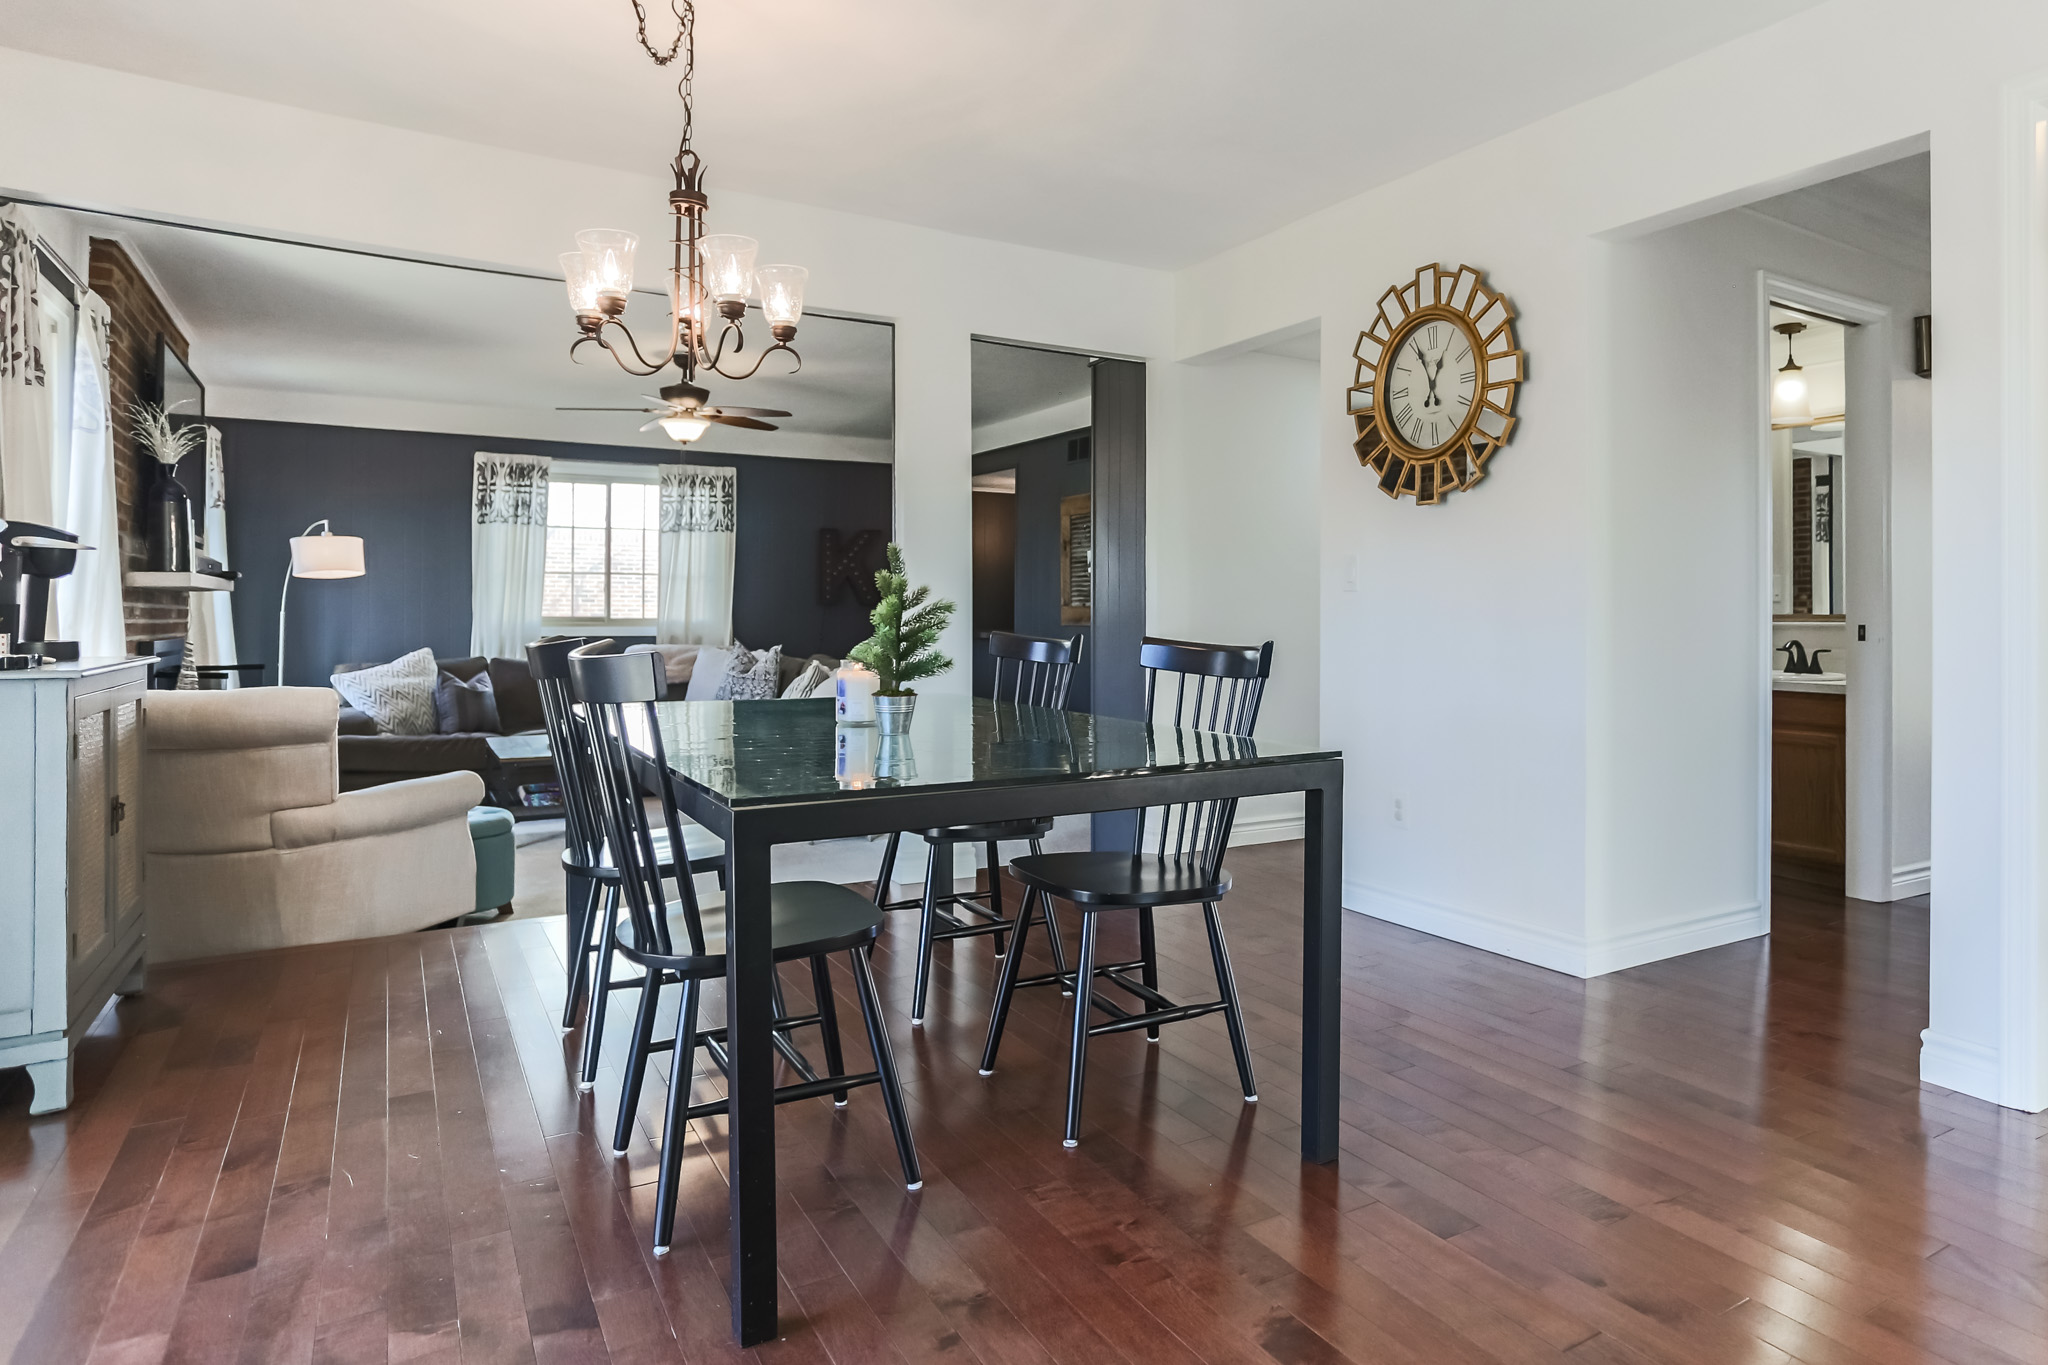 """The """"other end"""" of the kitchen. A little sneak peak into the family room too!"""